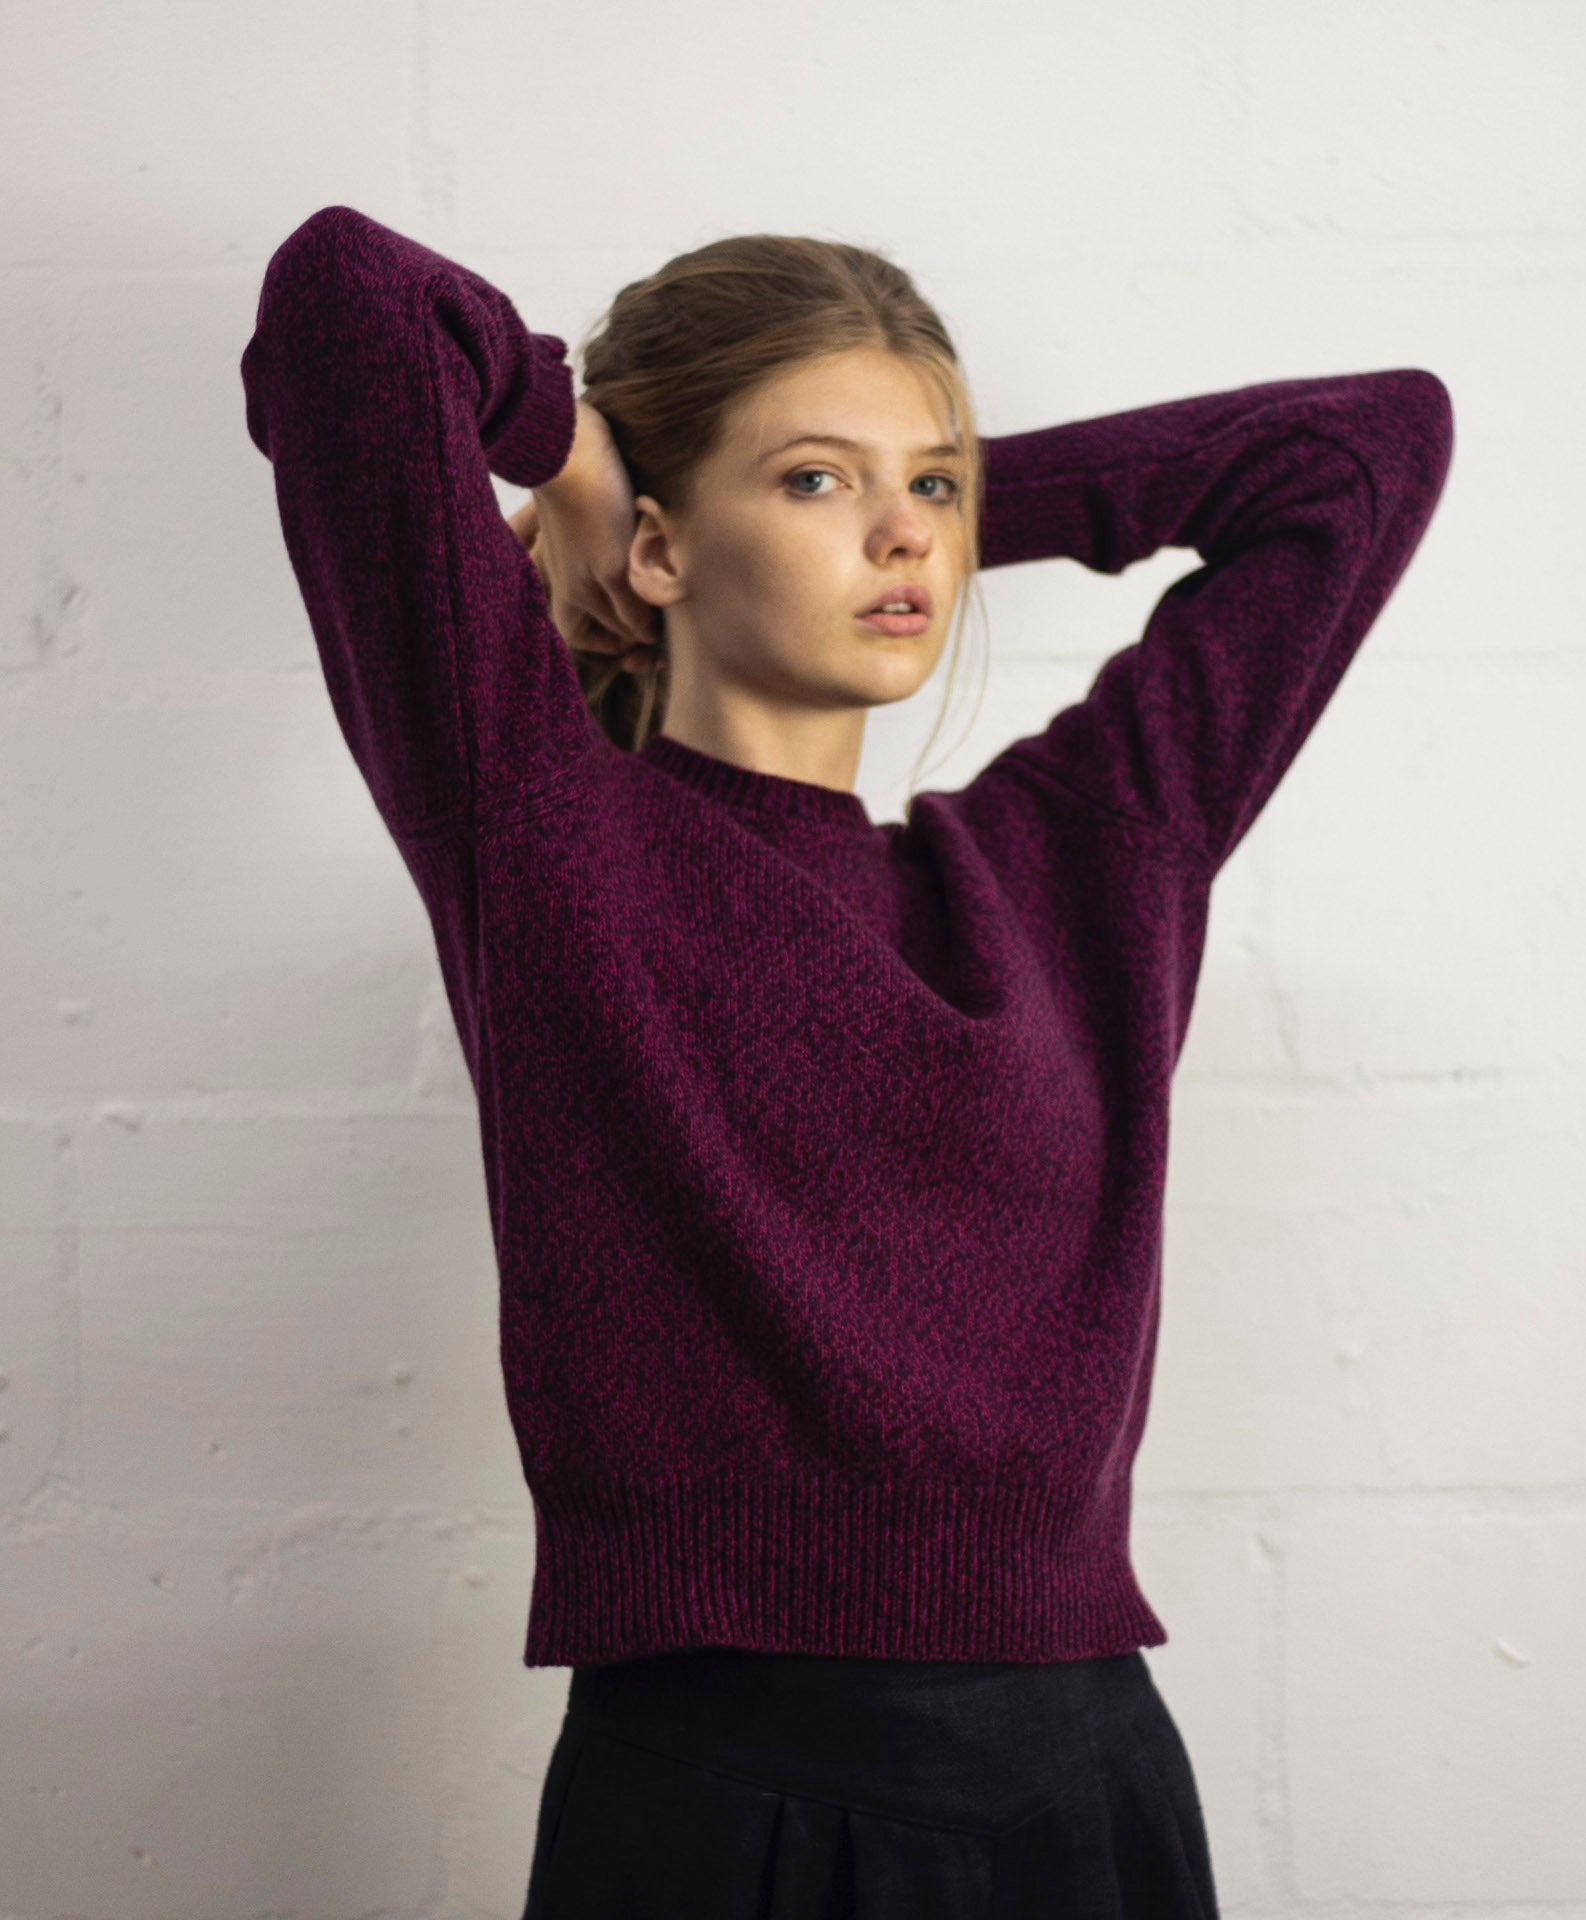 Flecked Purple Recycled Cashmere Sweater - crew neck, purple with pink